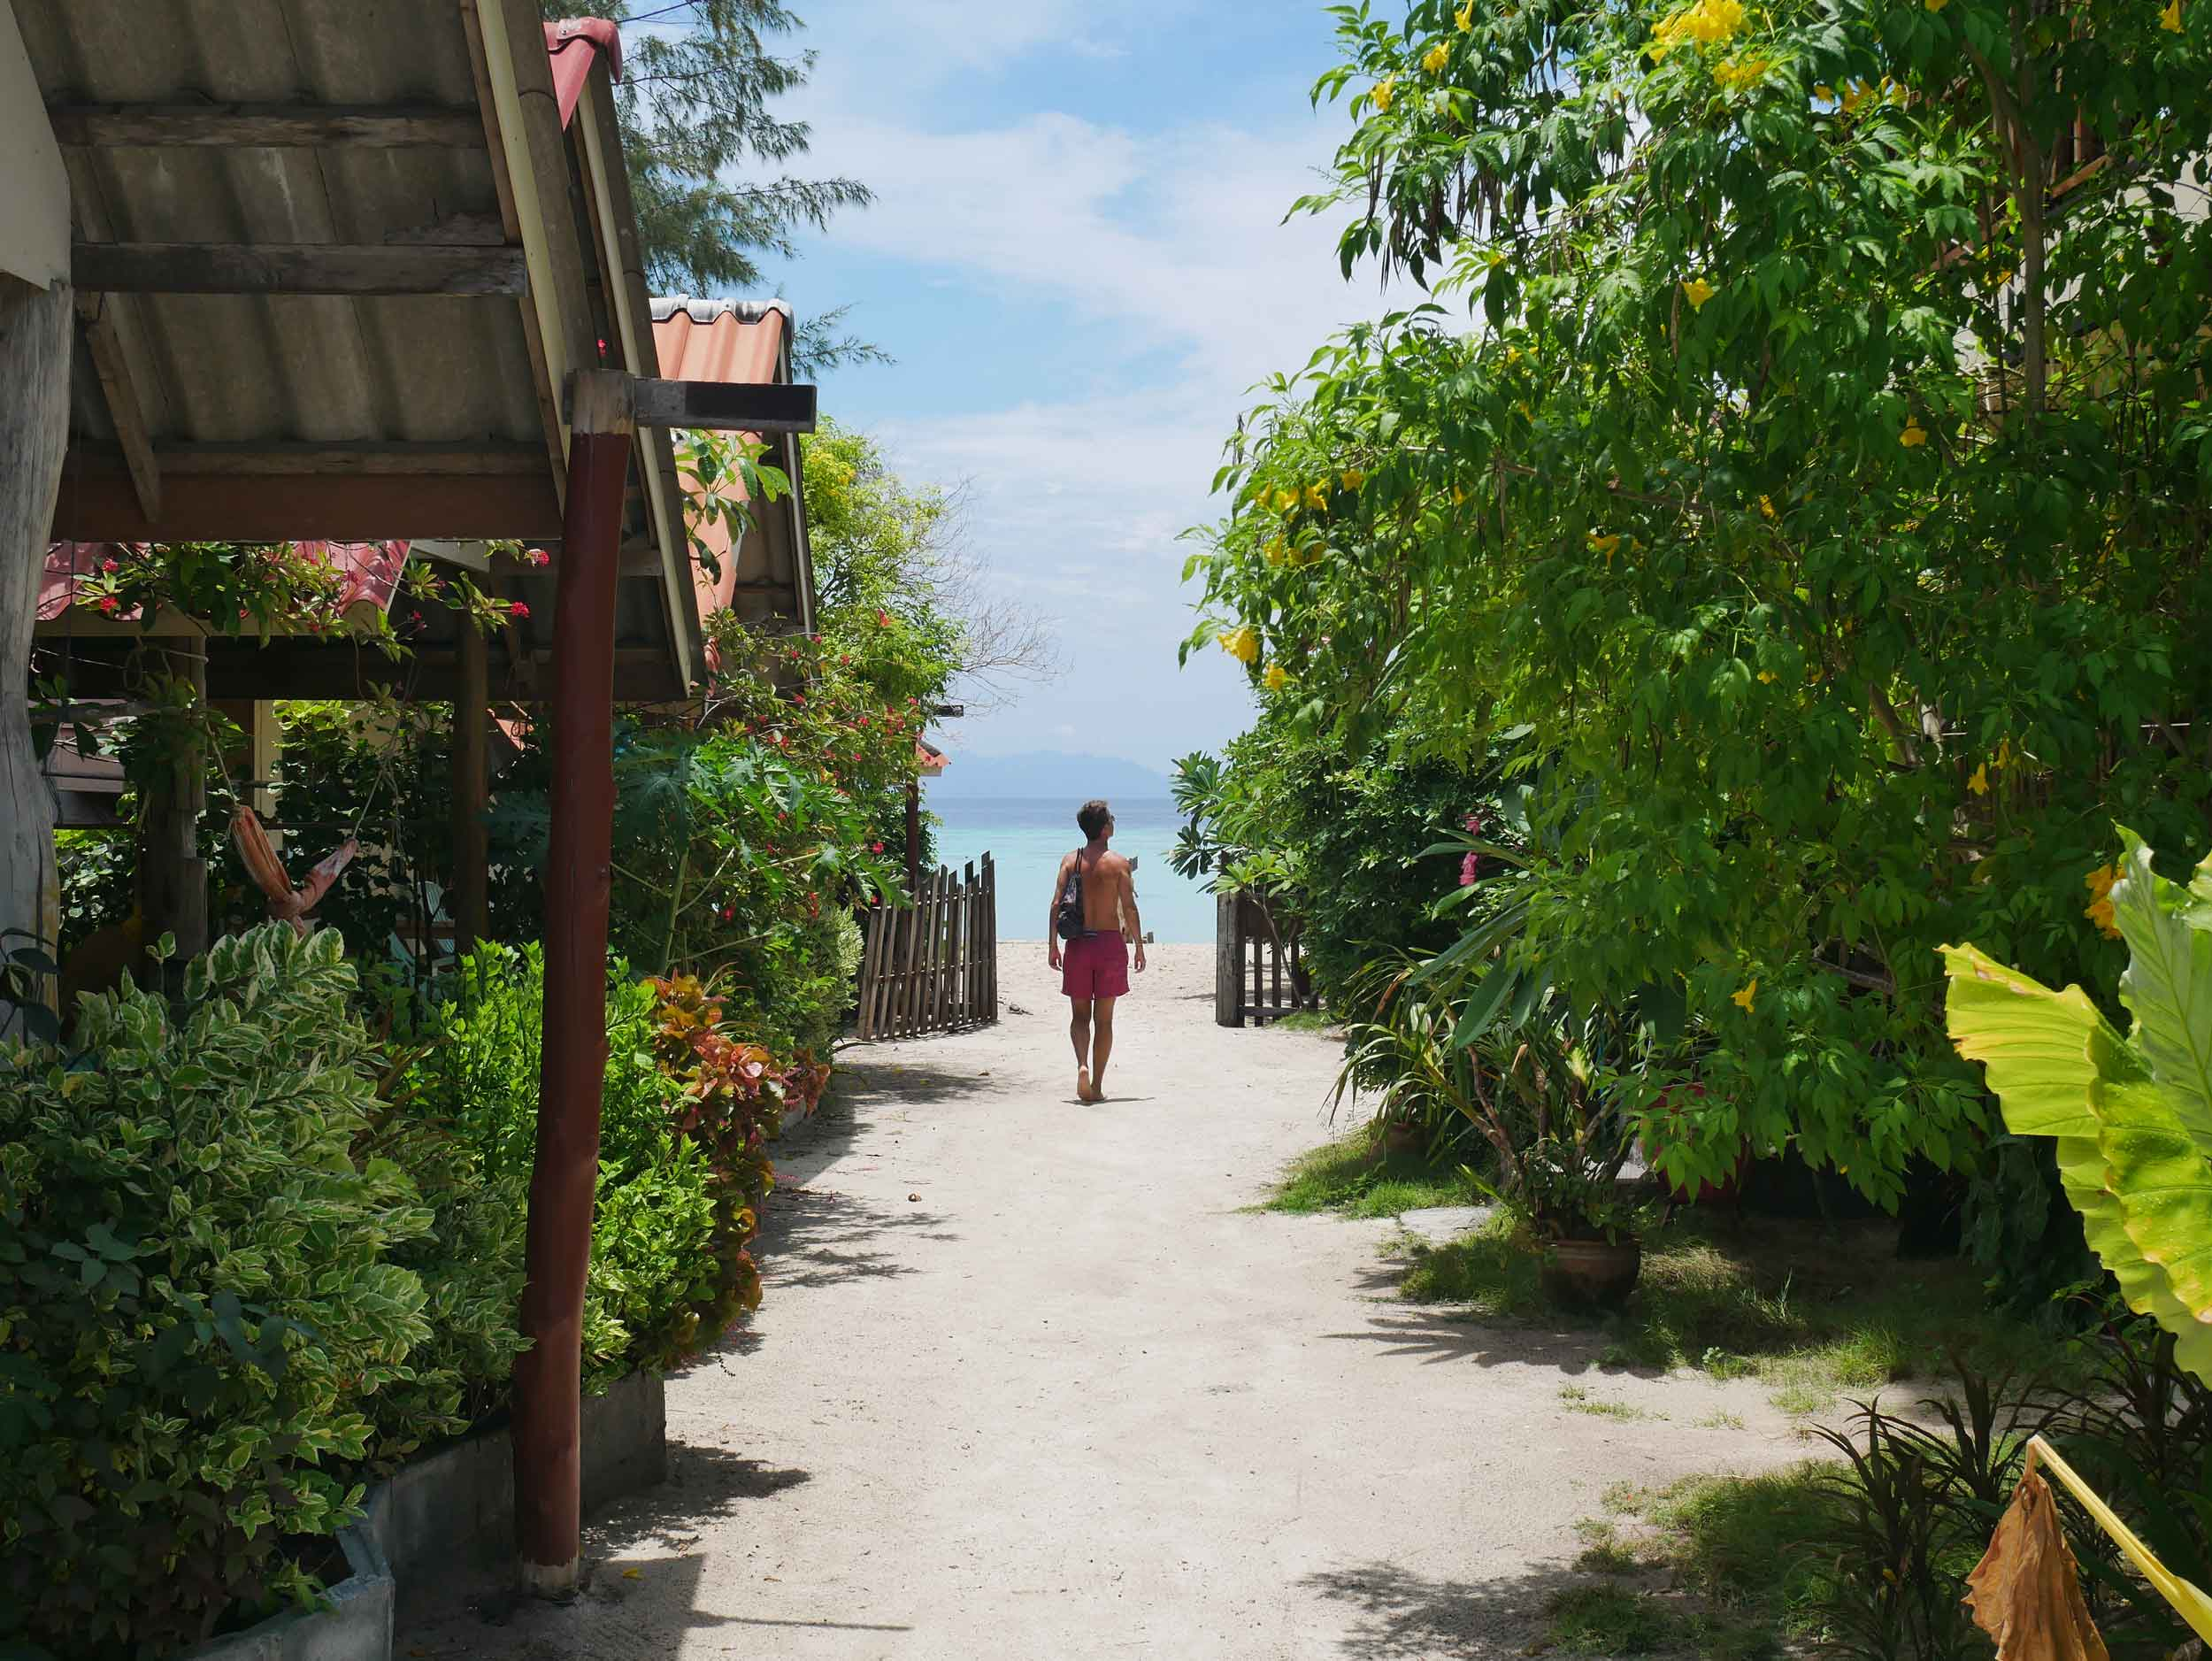 Ko Lipe, near the Malaysian border, offered another perfect beach and warm shallow waters.